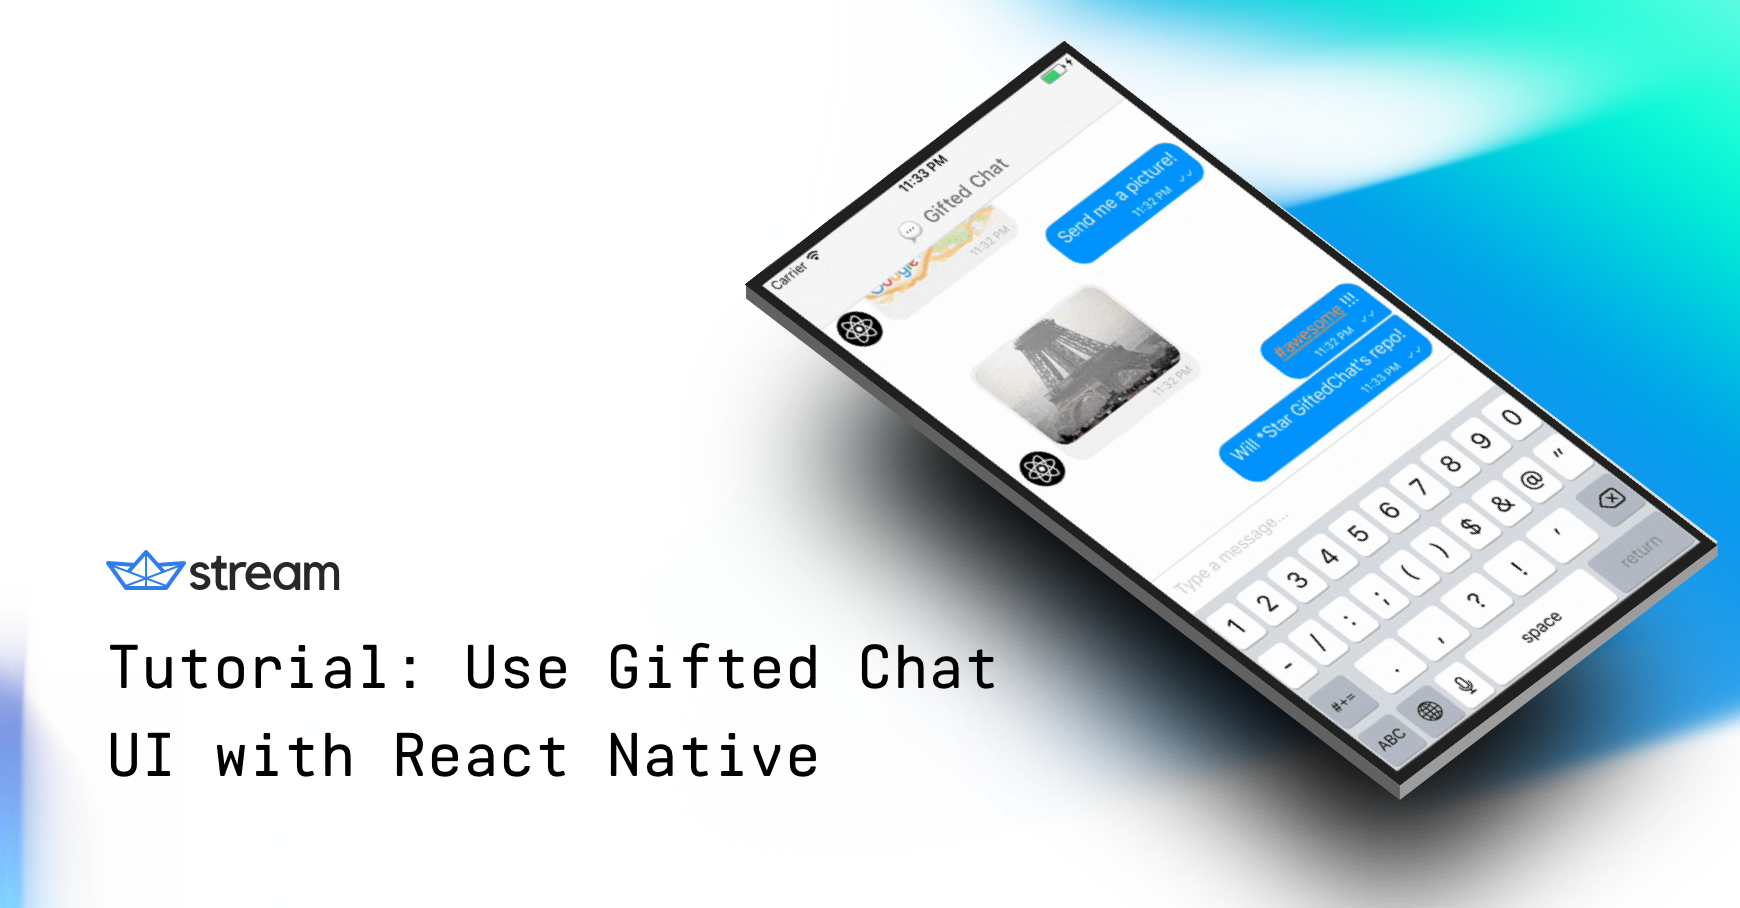 Tutorial: Use Gifted Chat UI with React Native - The Stream Blog